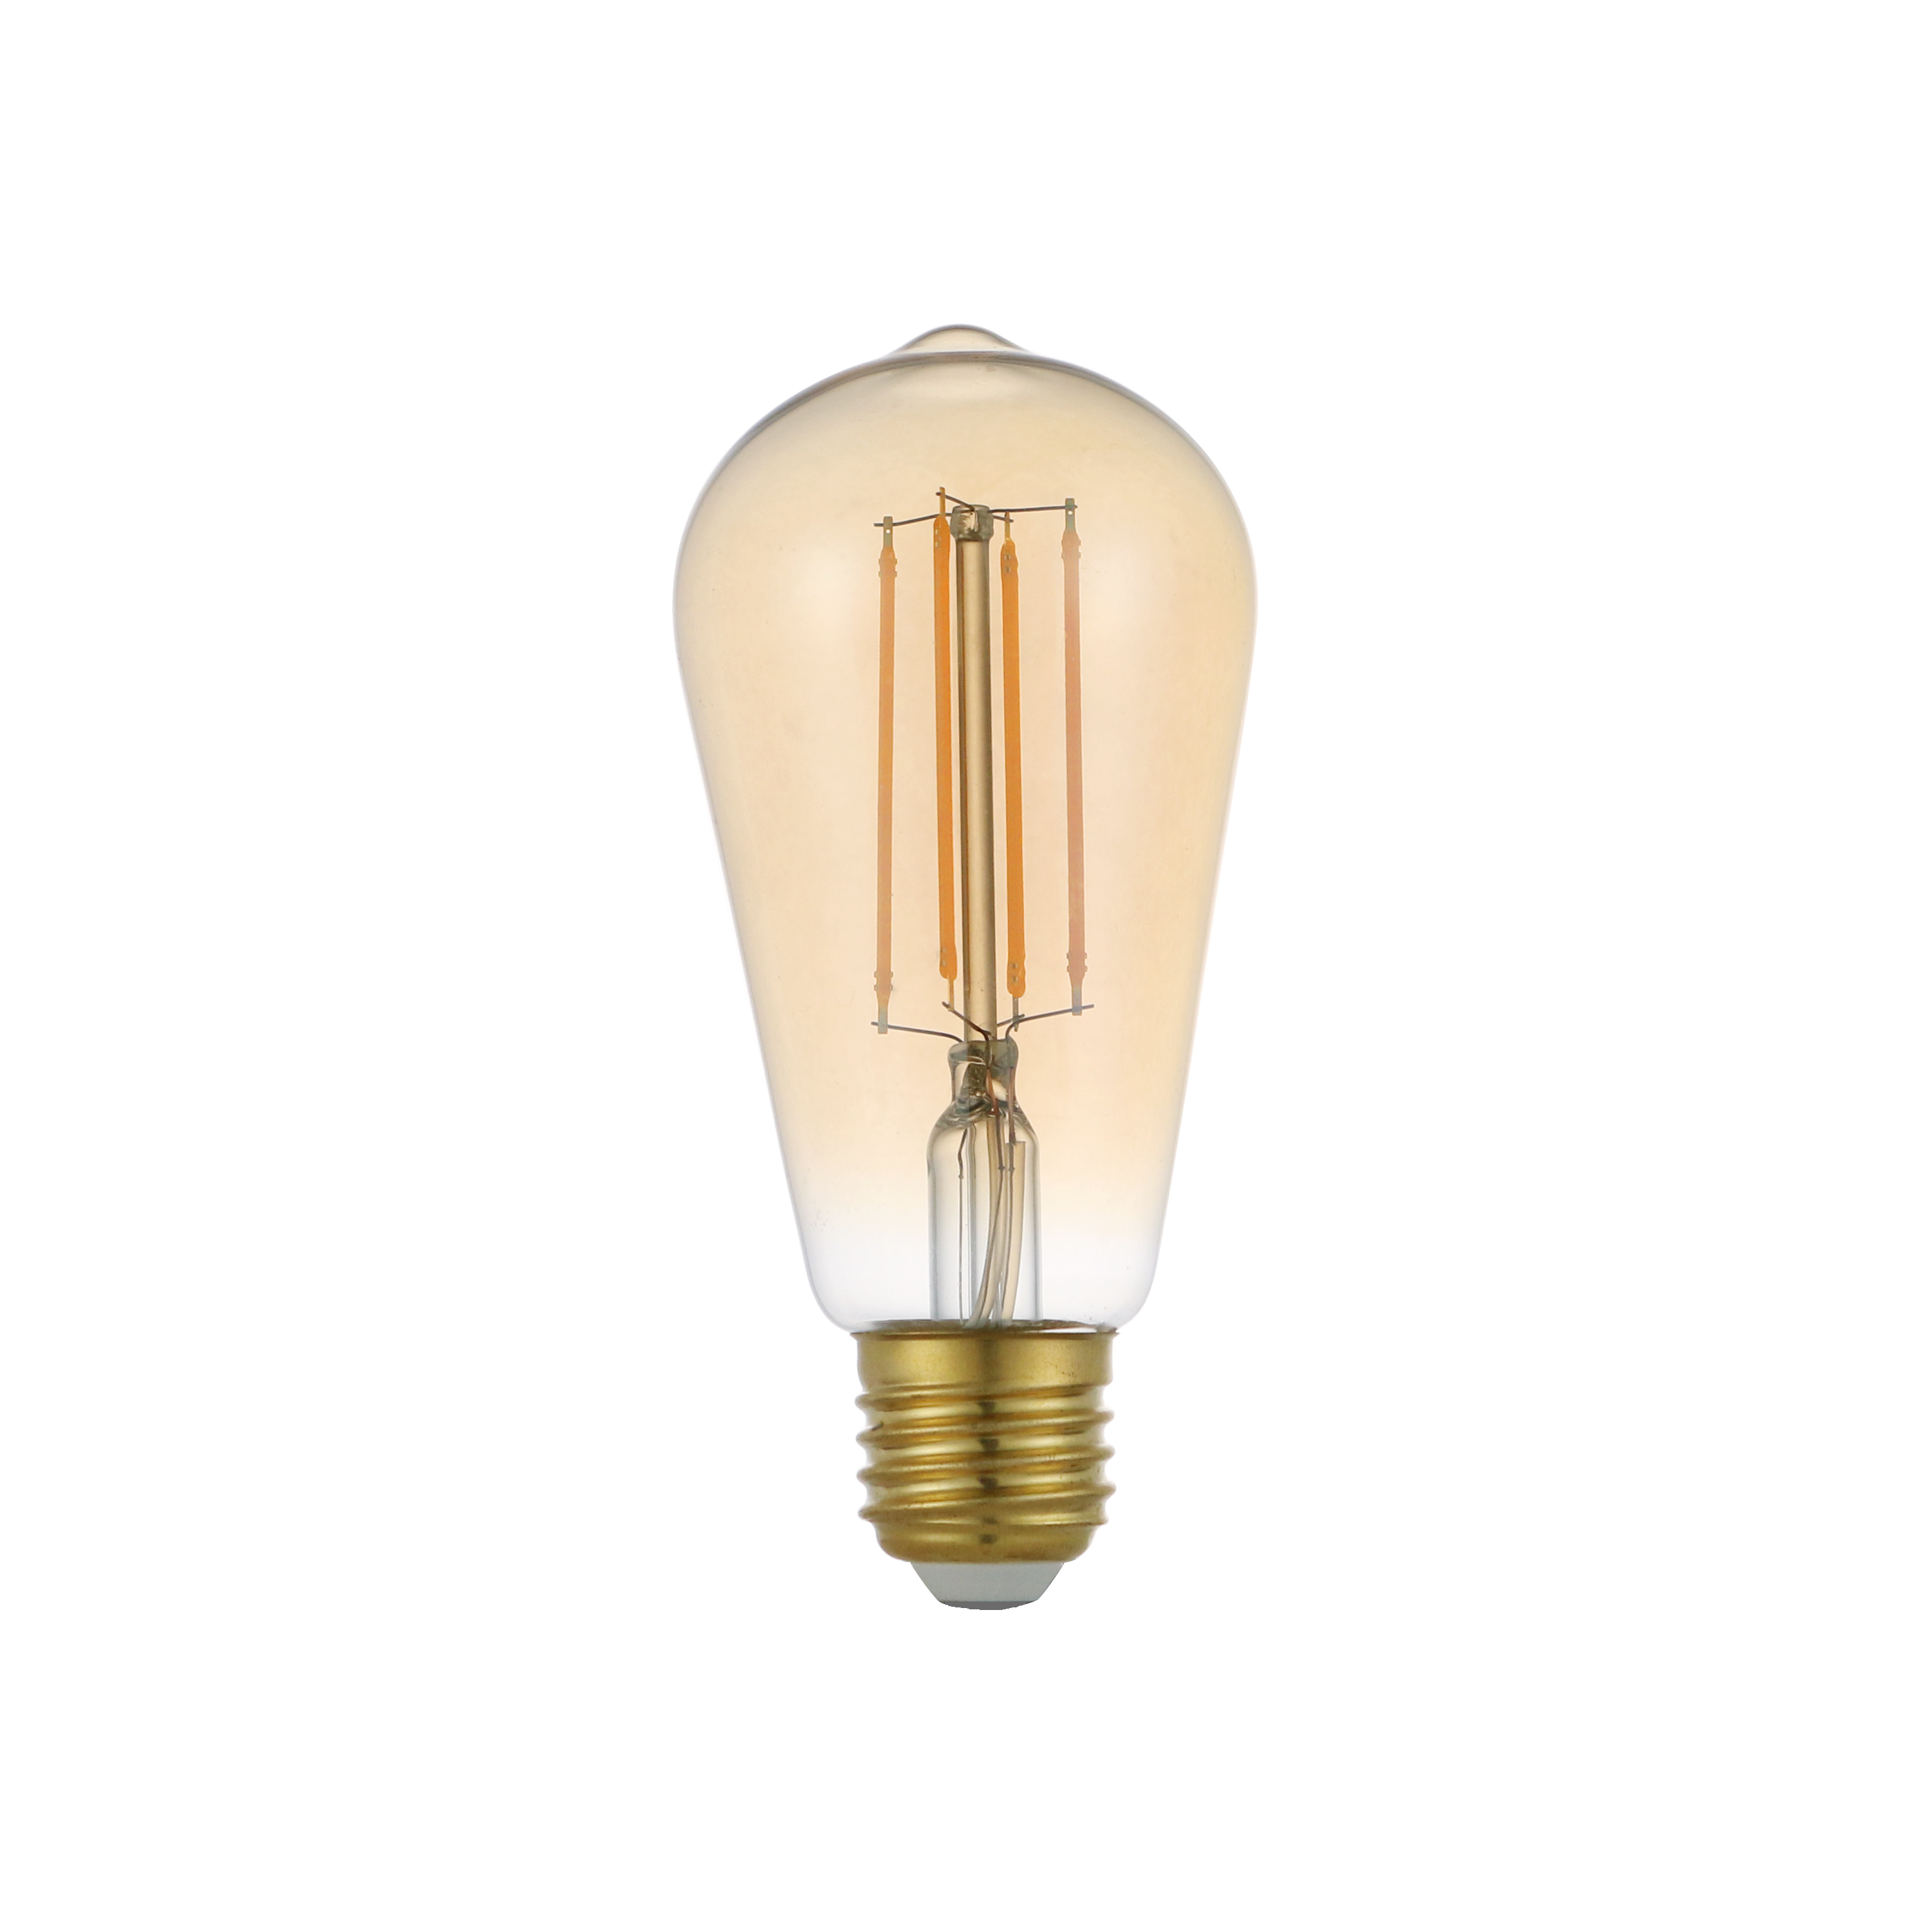 GMY E27 Warm Wit Vintage Edison LED <span class=keywords><strong>Lamp</strong></span> Dimbare 4 w G80 <span class=keywords><strong>Antieke</strong></span> LED Gloeilampen Globe Vorm Voor Decoratie met CE Rohs